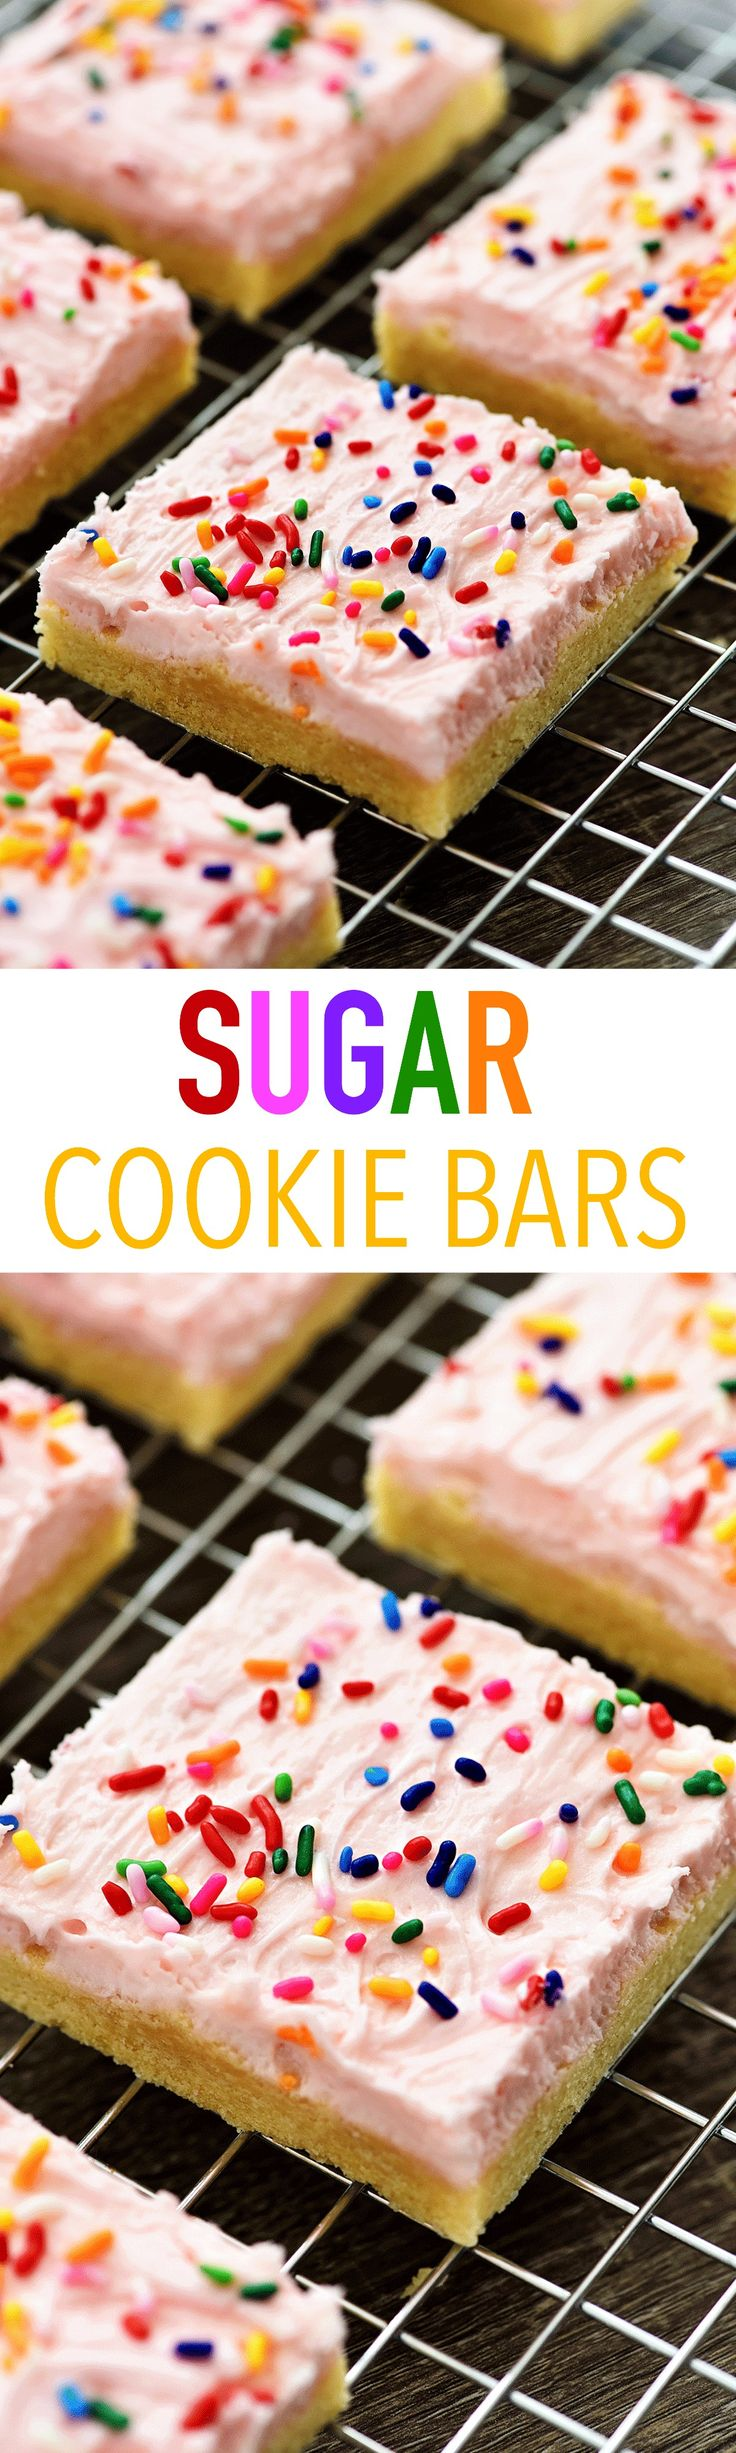 I love a soft, frosted homemade sugar cookie! ♥ They are famous on Valentines Day, and since it's right around the corner I thought I'd share this outstanding recipe for Sugar Cookie Bars! These bars are phenomenal! Seriously, amazing! And bonus they are so much easier to make than the traditional sugar cookie. No chilling the dough, or rolling and cutting.... Read More »